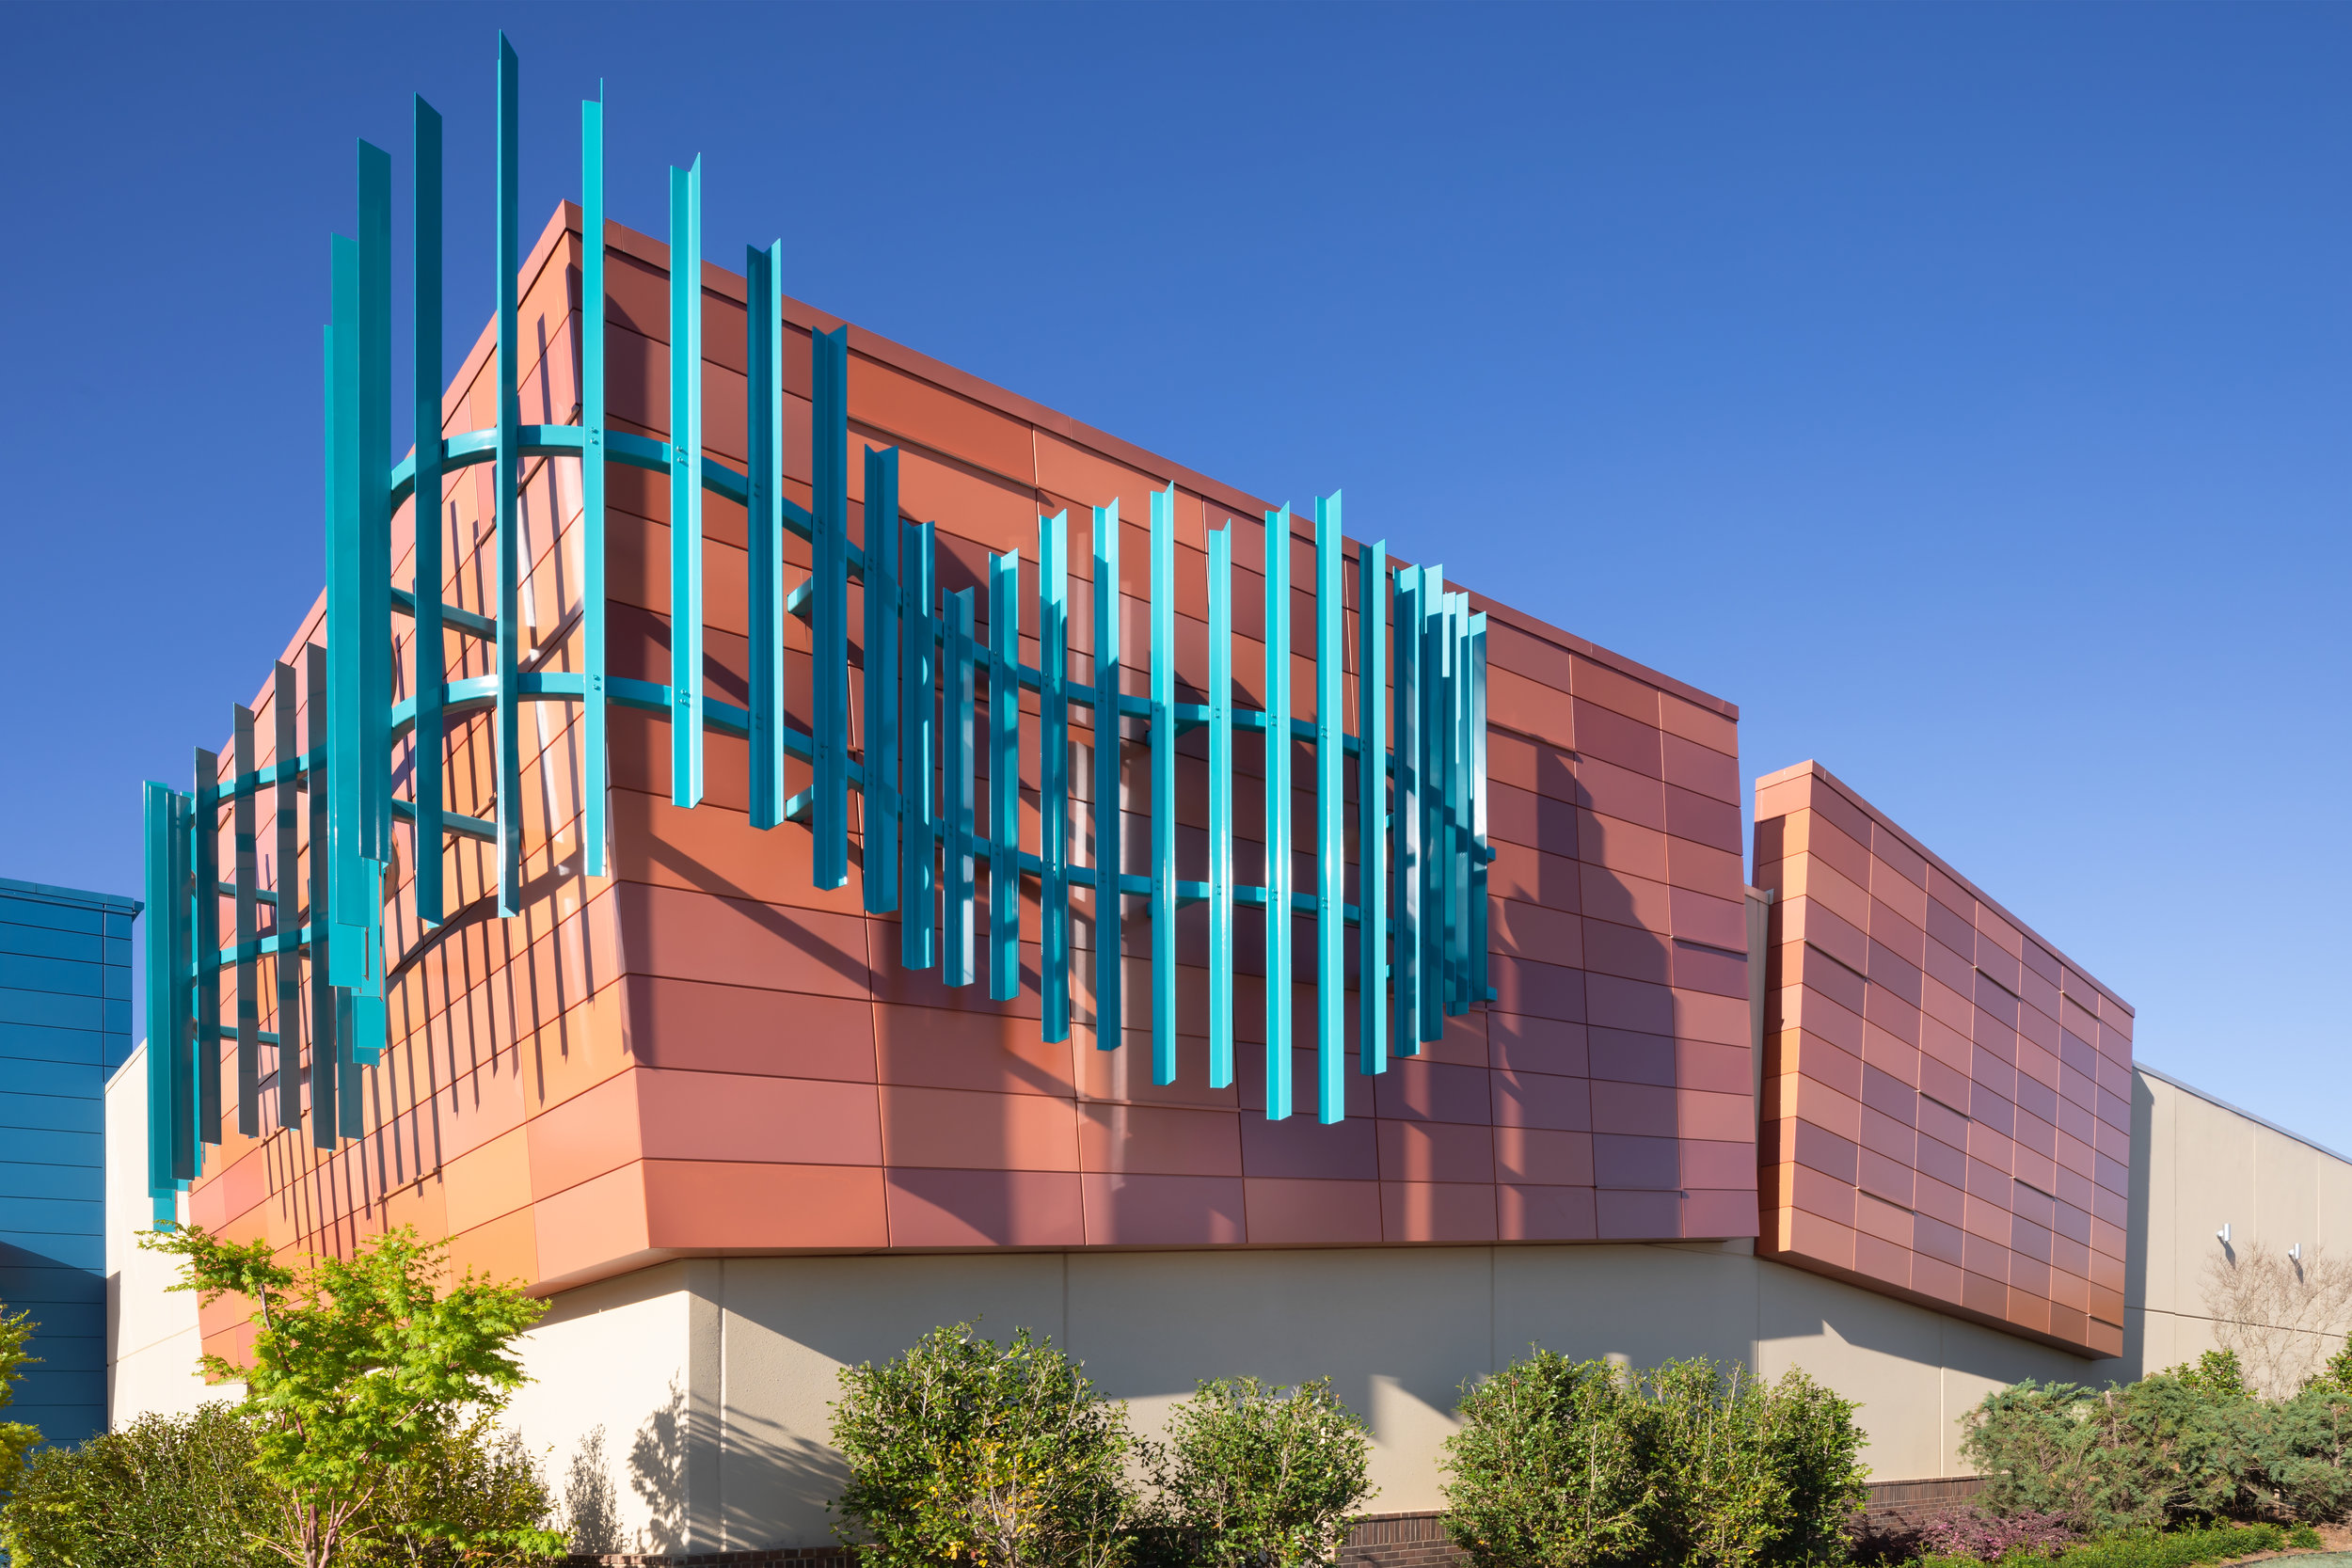 ADW-Entertainment-Frankie's-Fun-Park-Huntersville-NC-Exterior-Metal Panels & Fins.jpg